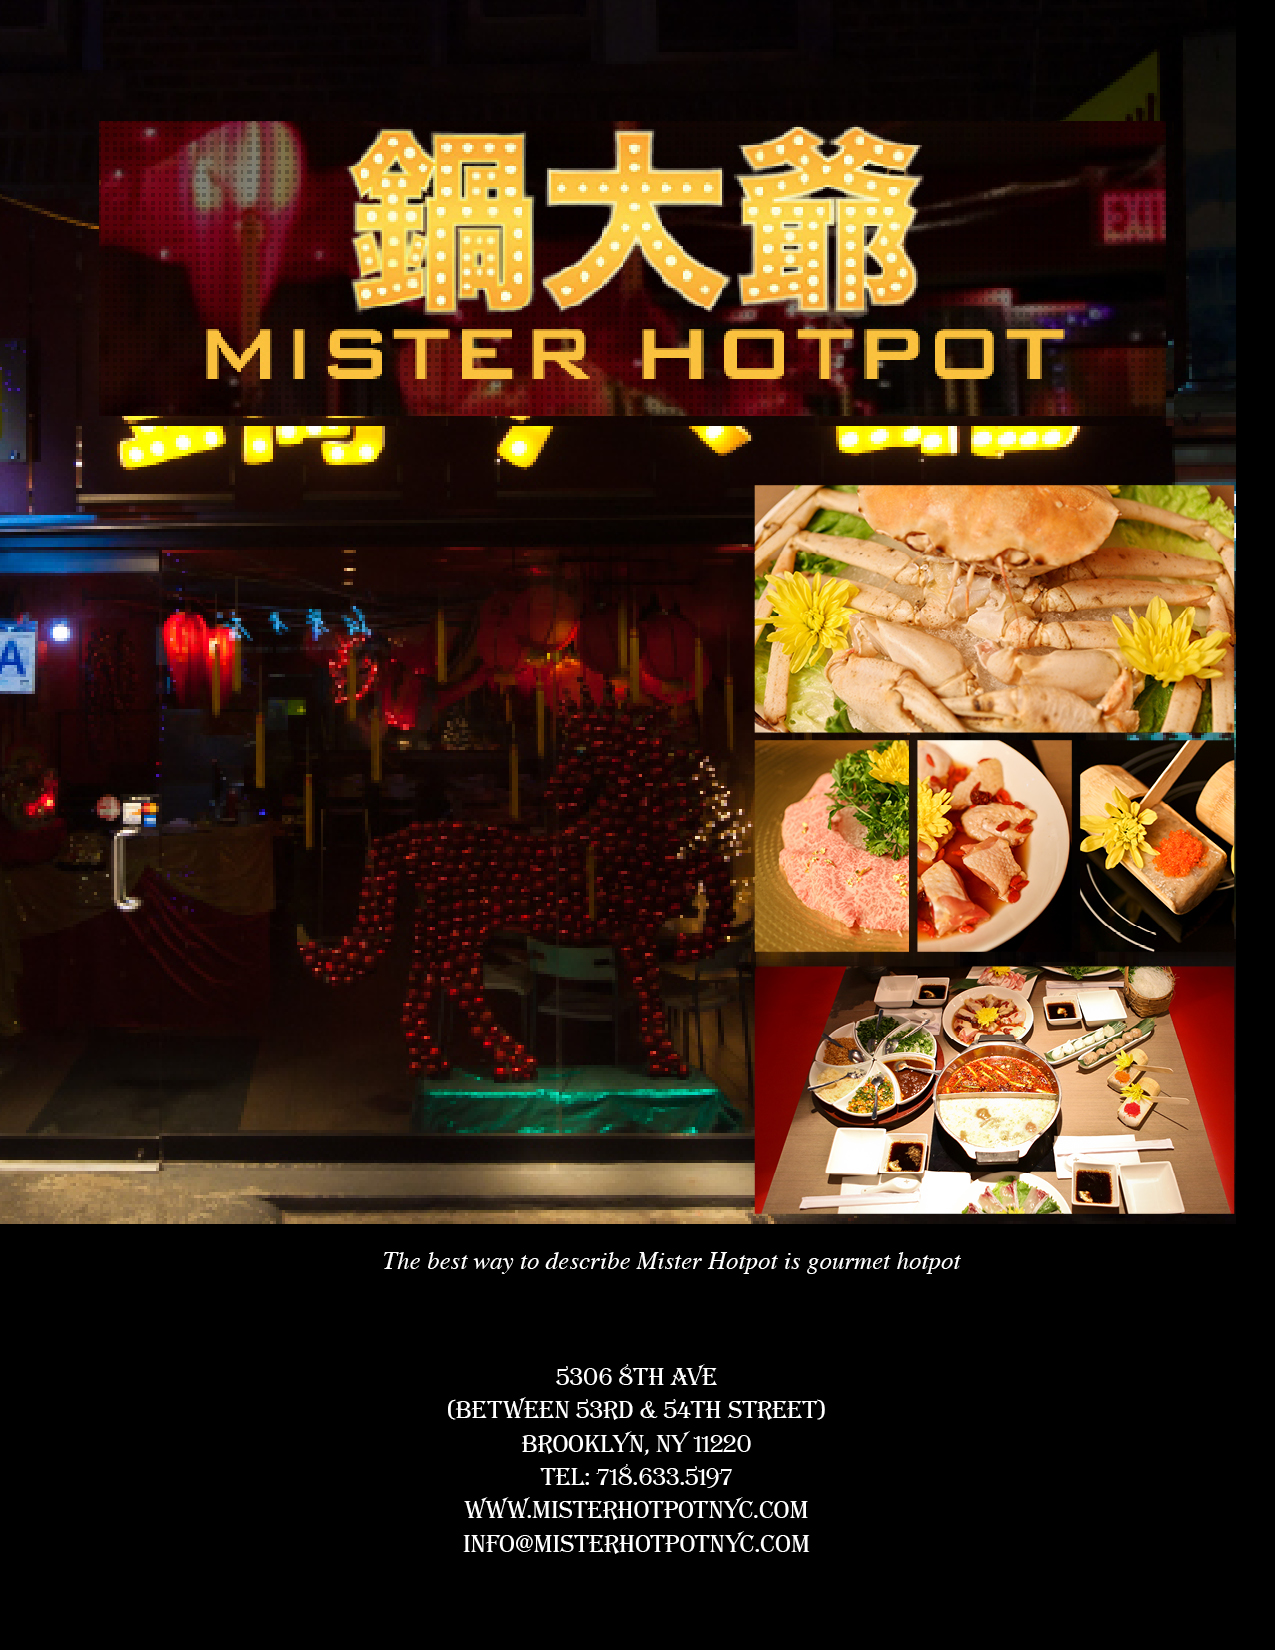 mister hotpot nyc